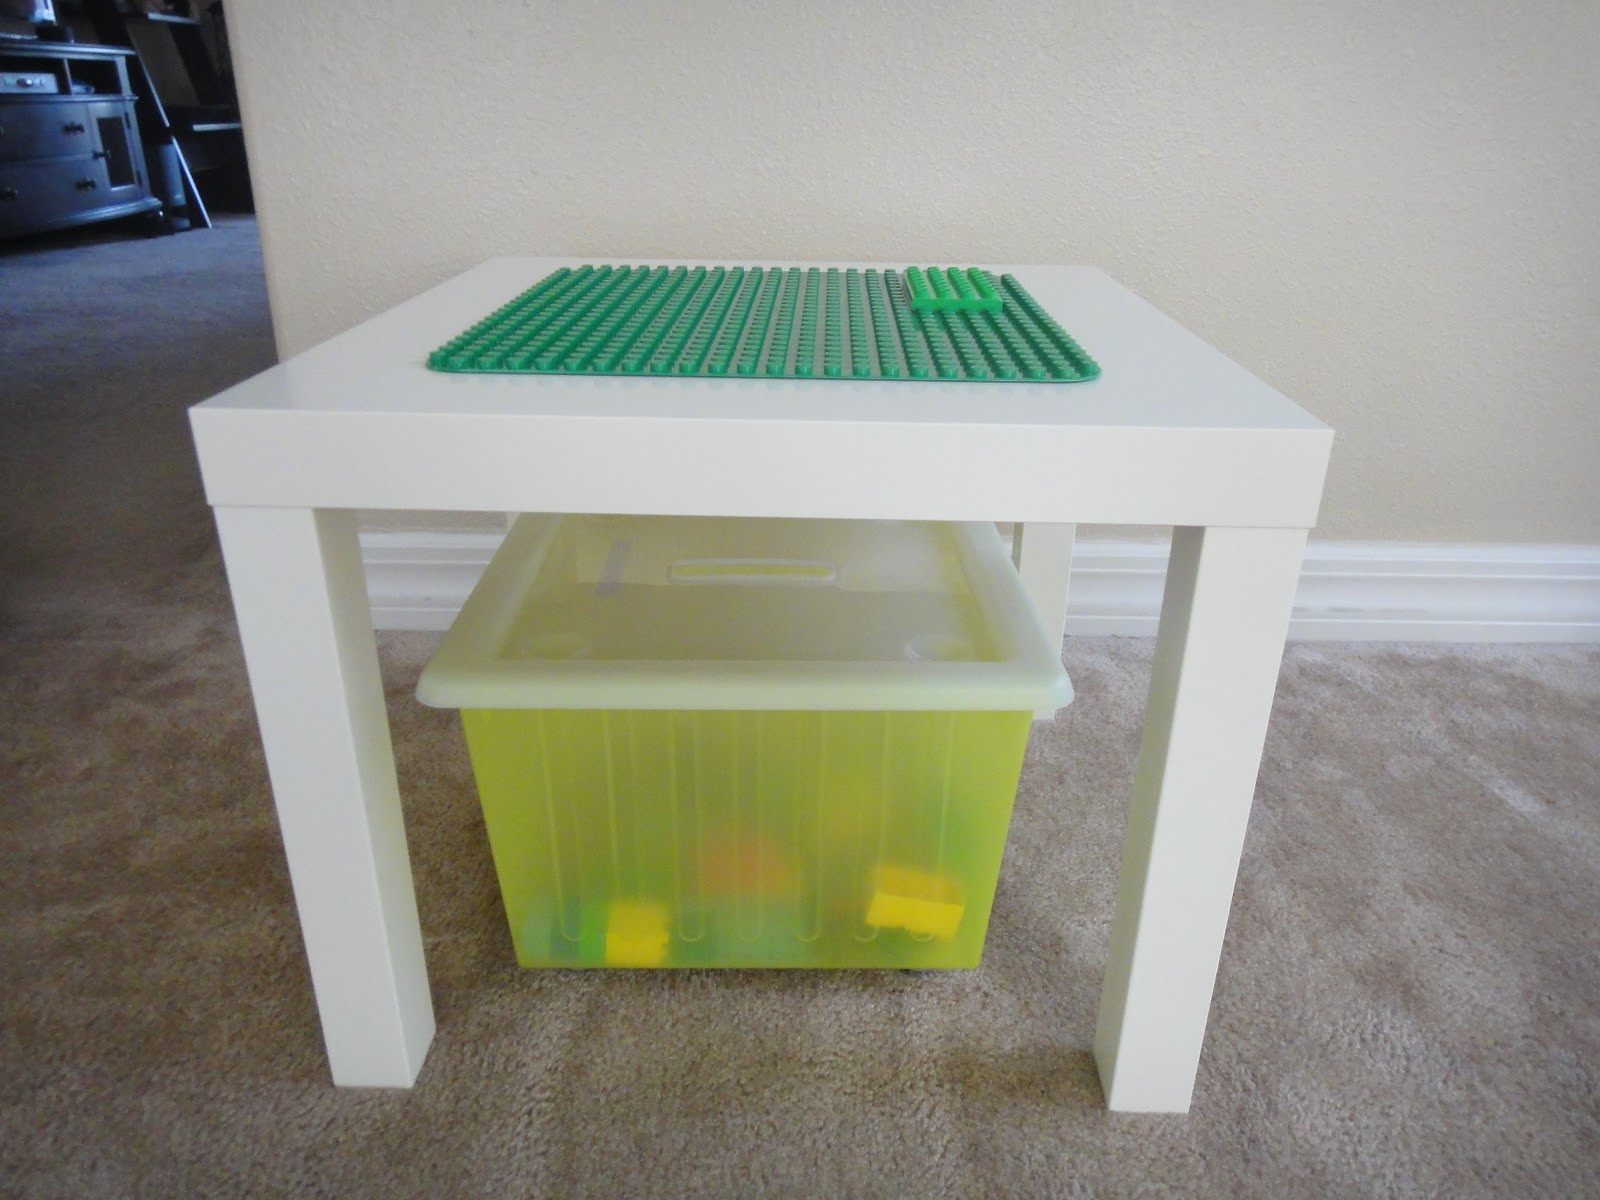 The porter family ikea hack for Table lego ikea